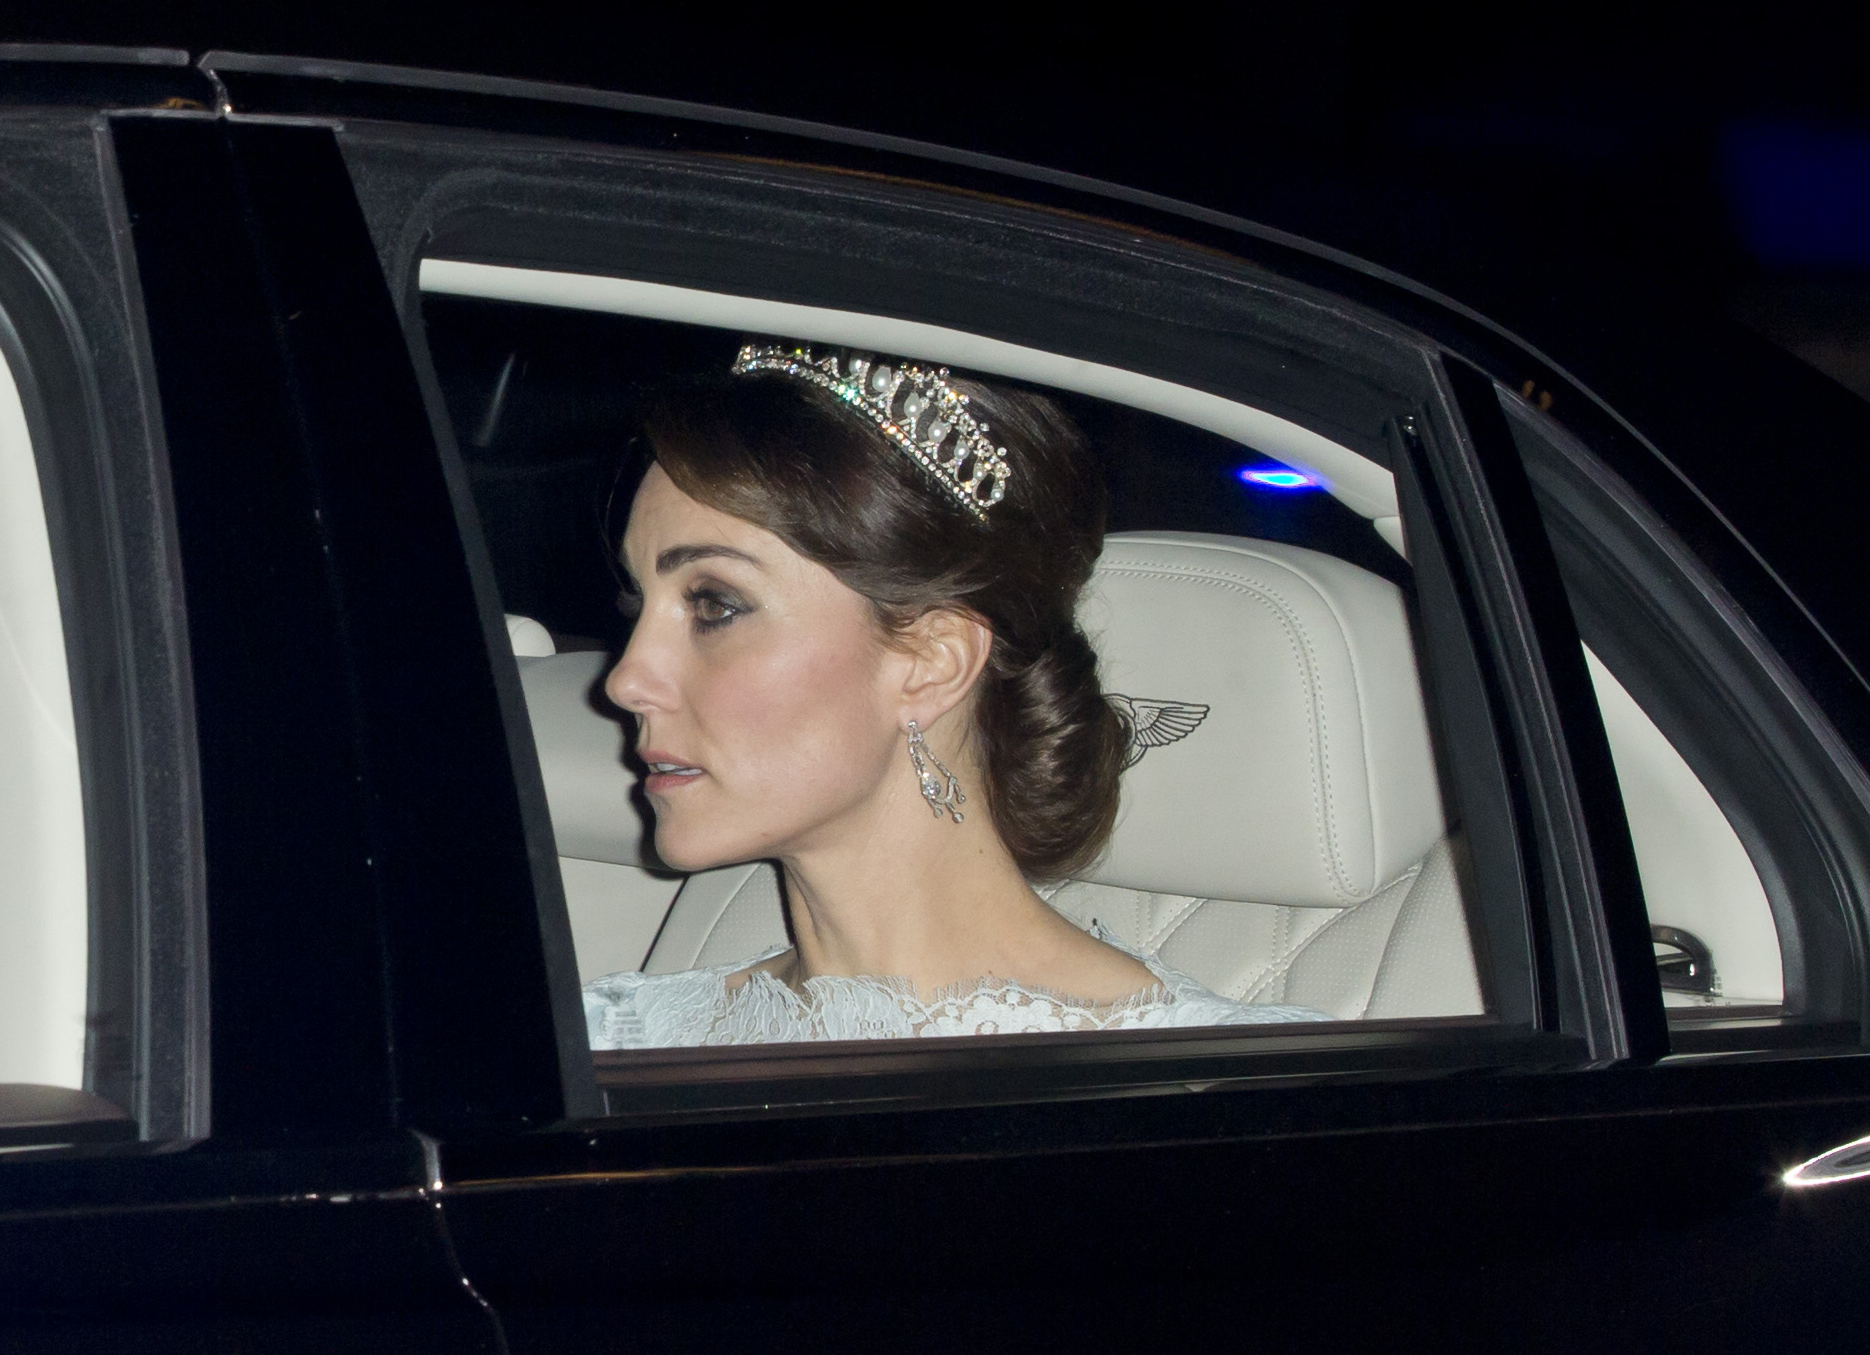 Kate Middleton attends the annual Diplomatic Reception at Buckingham Palace on Dec. 8, 2015 in London.